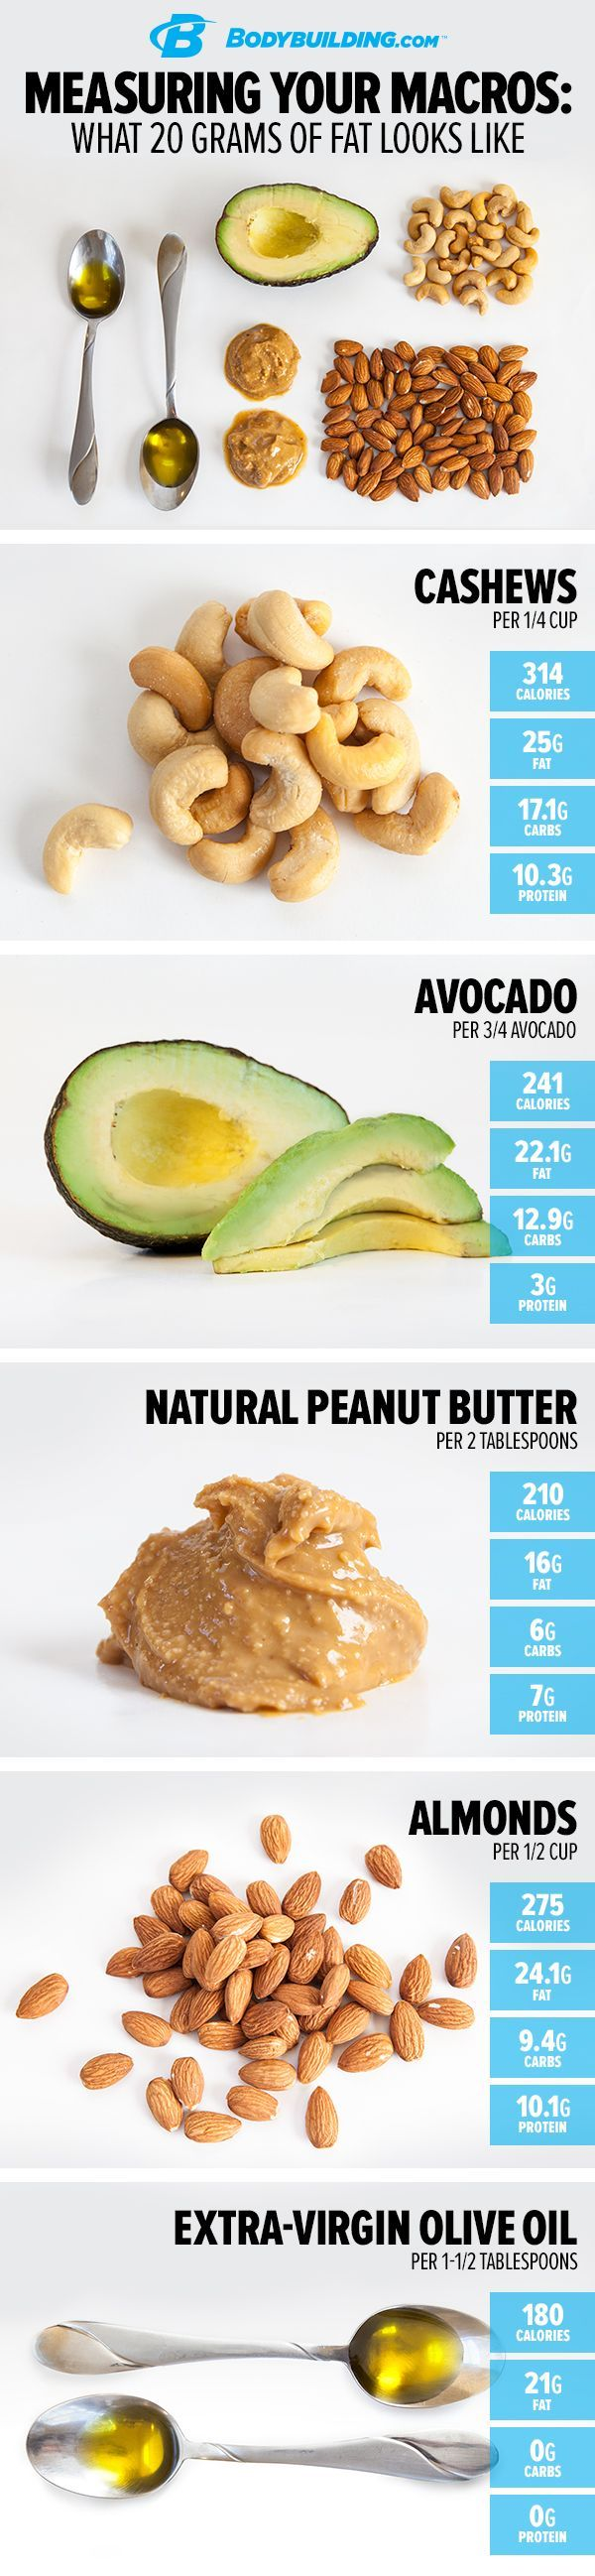 MEASURING YOUR MACROS: WHAT 30 GRAMS OF PROTEIN LOOKS LIKE. Want to build muscle and lose fat? Then you need protein! Here's how much you need and how to measure it for each meal. Bodybuilding.com